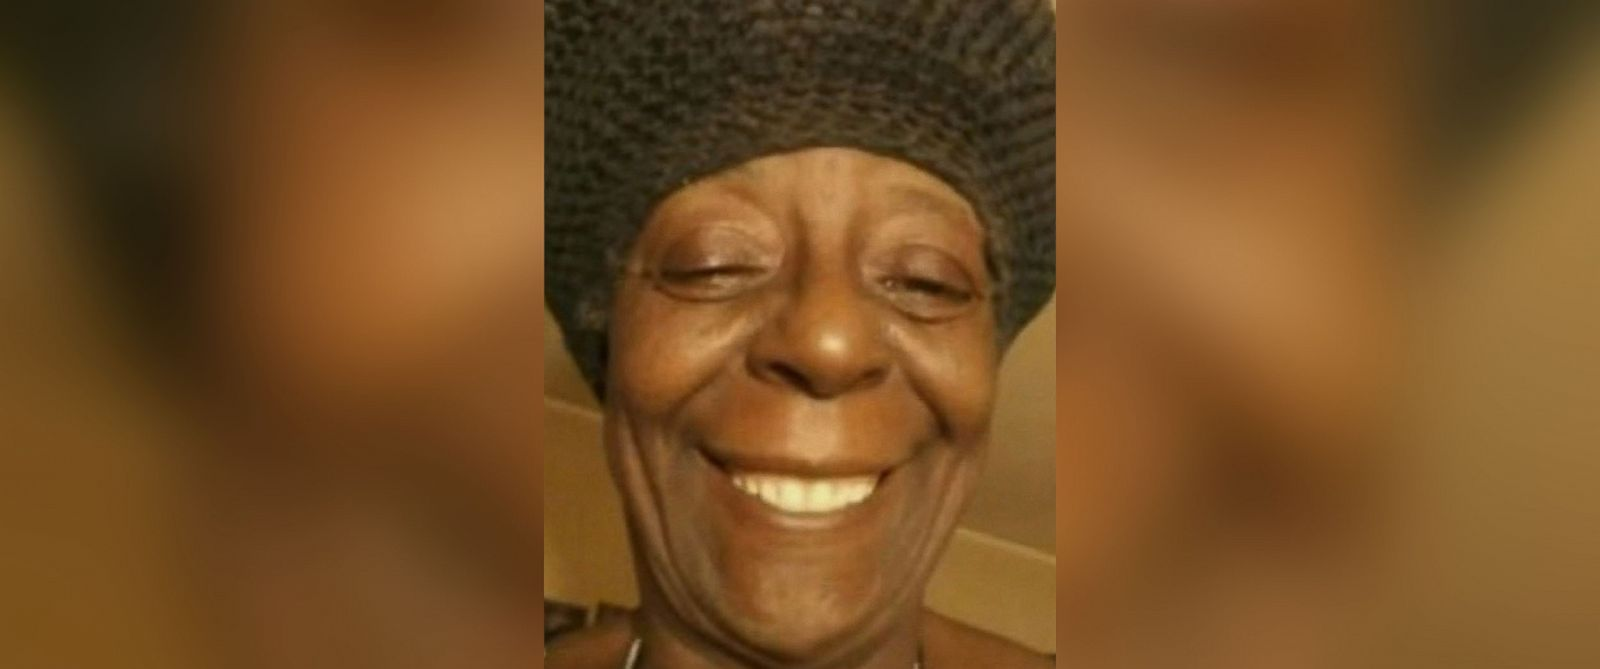 PHOTO: An NYPD police sergeant shot and killed 66-year-old Deborah Danner Tuesday night after a neighbor called 911 saying she was acting in an irrational manner.